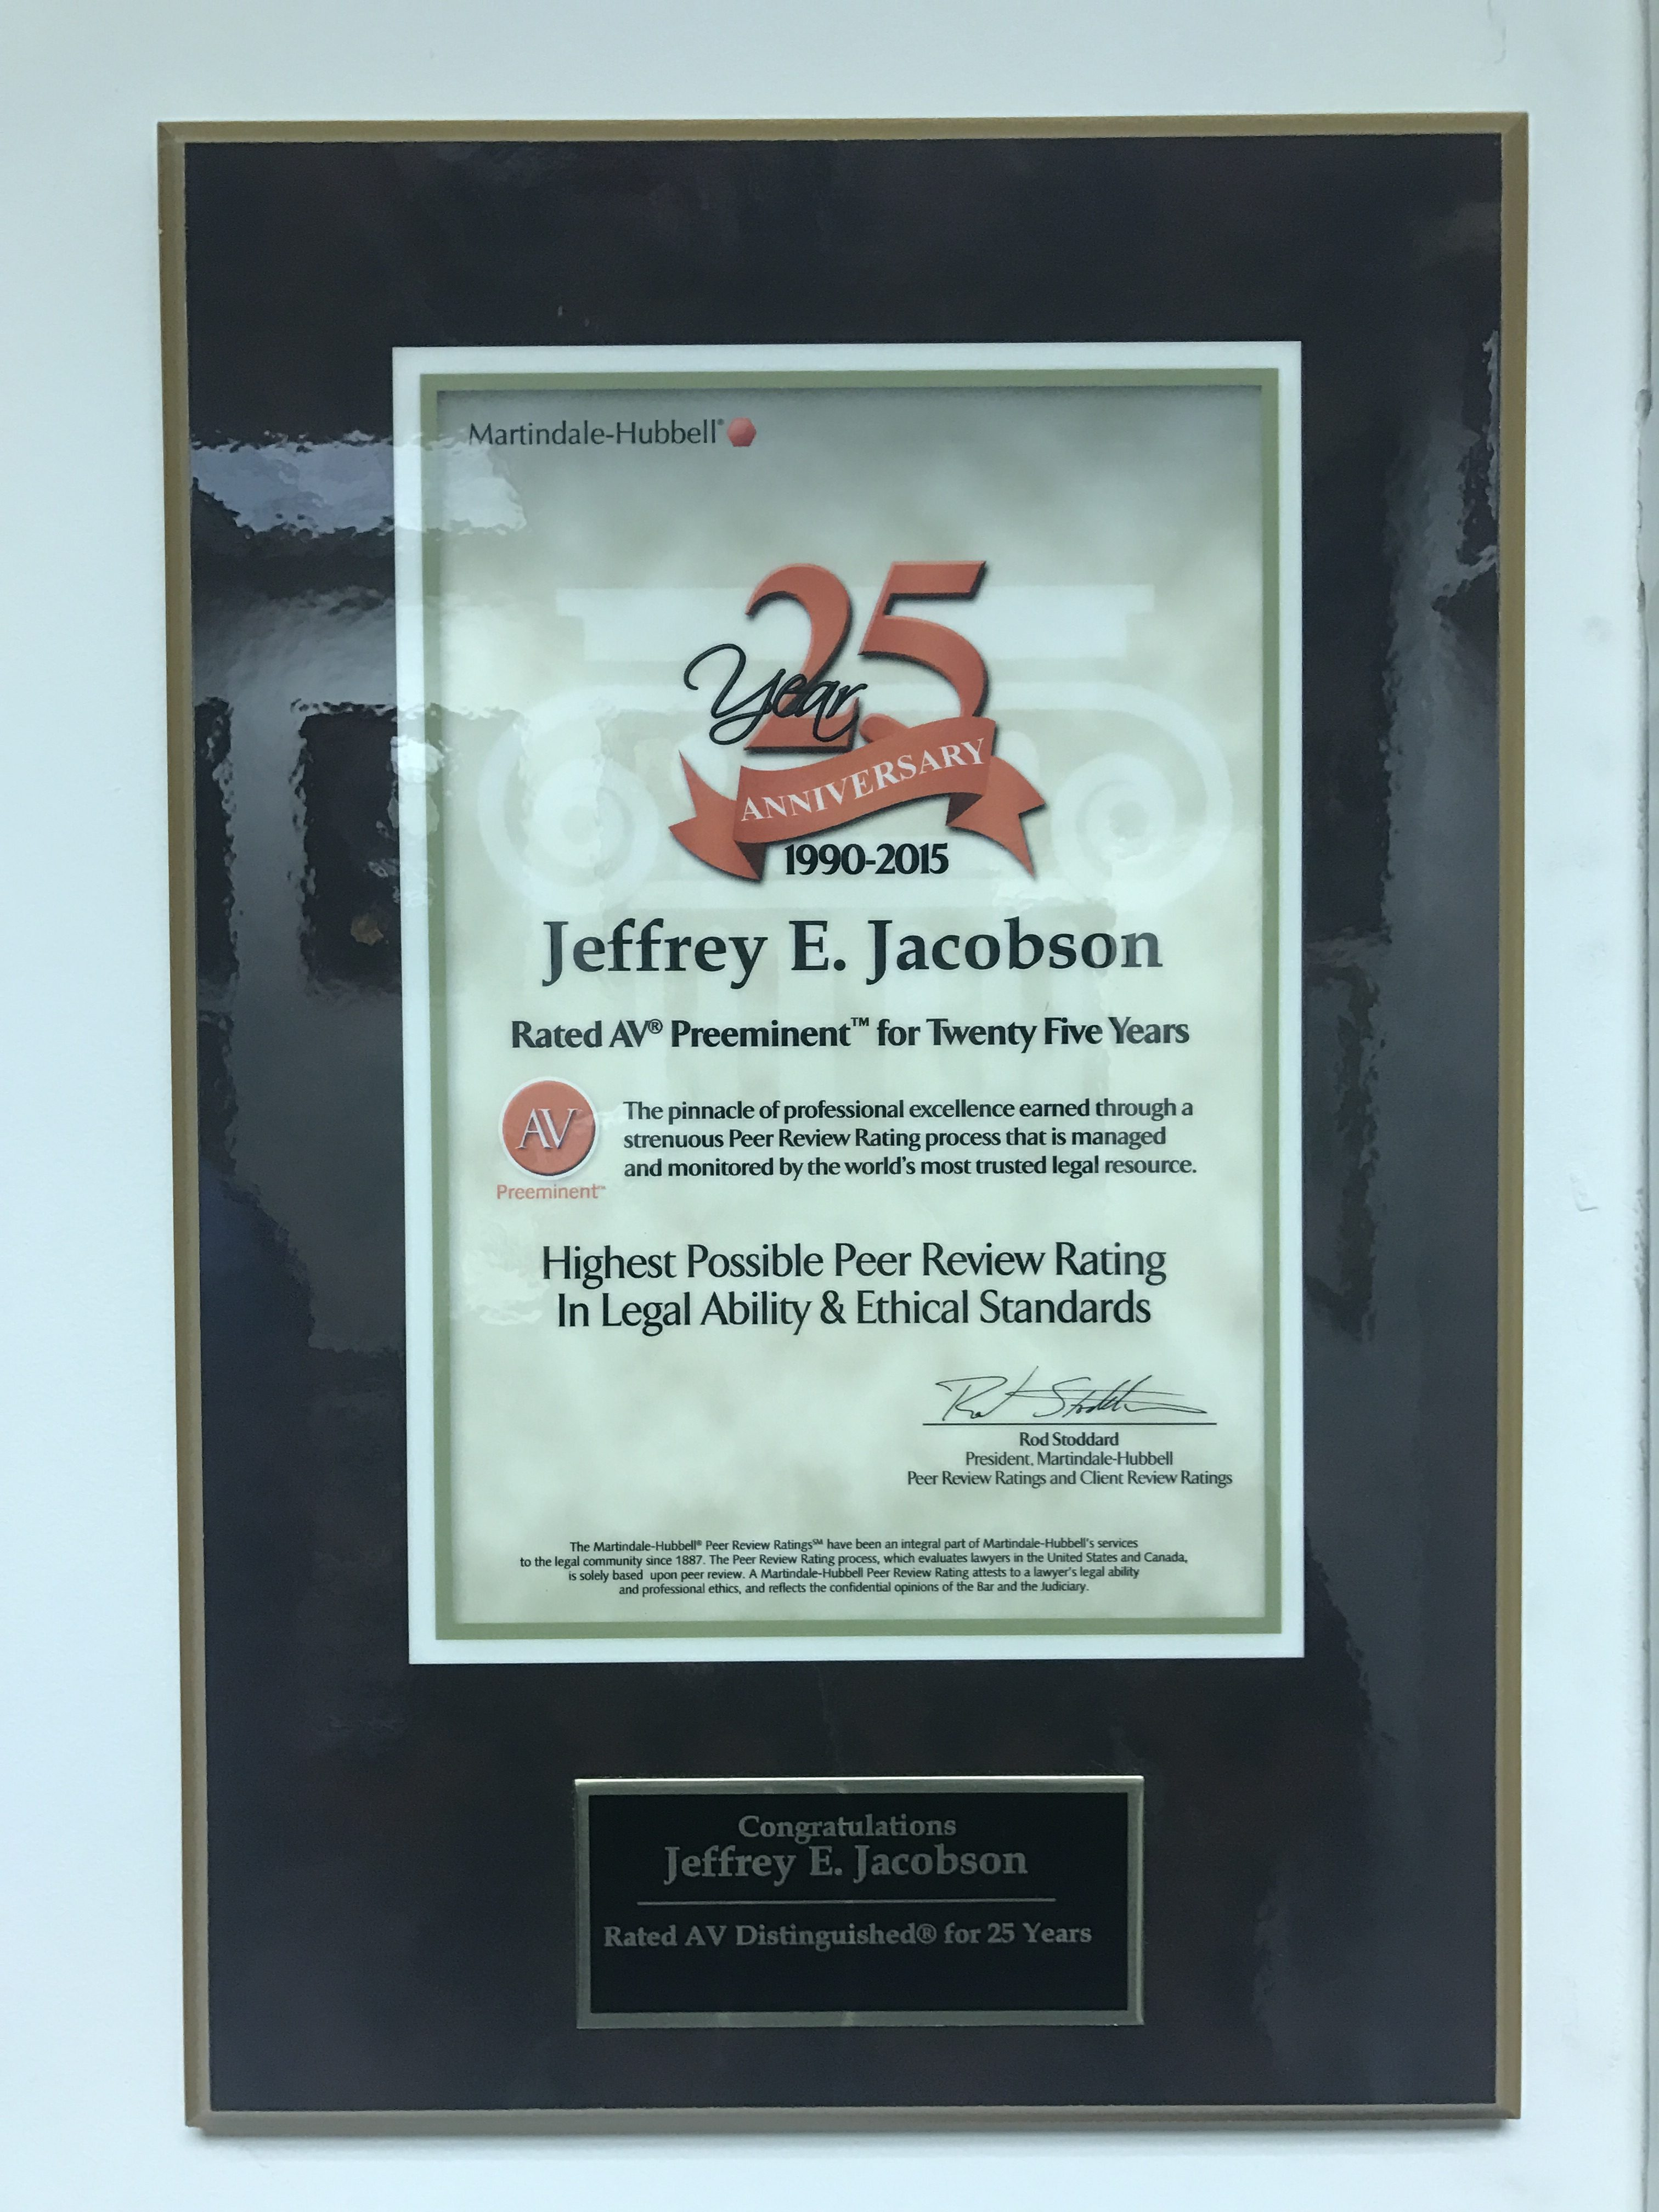 Jeffrey E. Jacobson received 25th Anniversary AV Rated